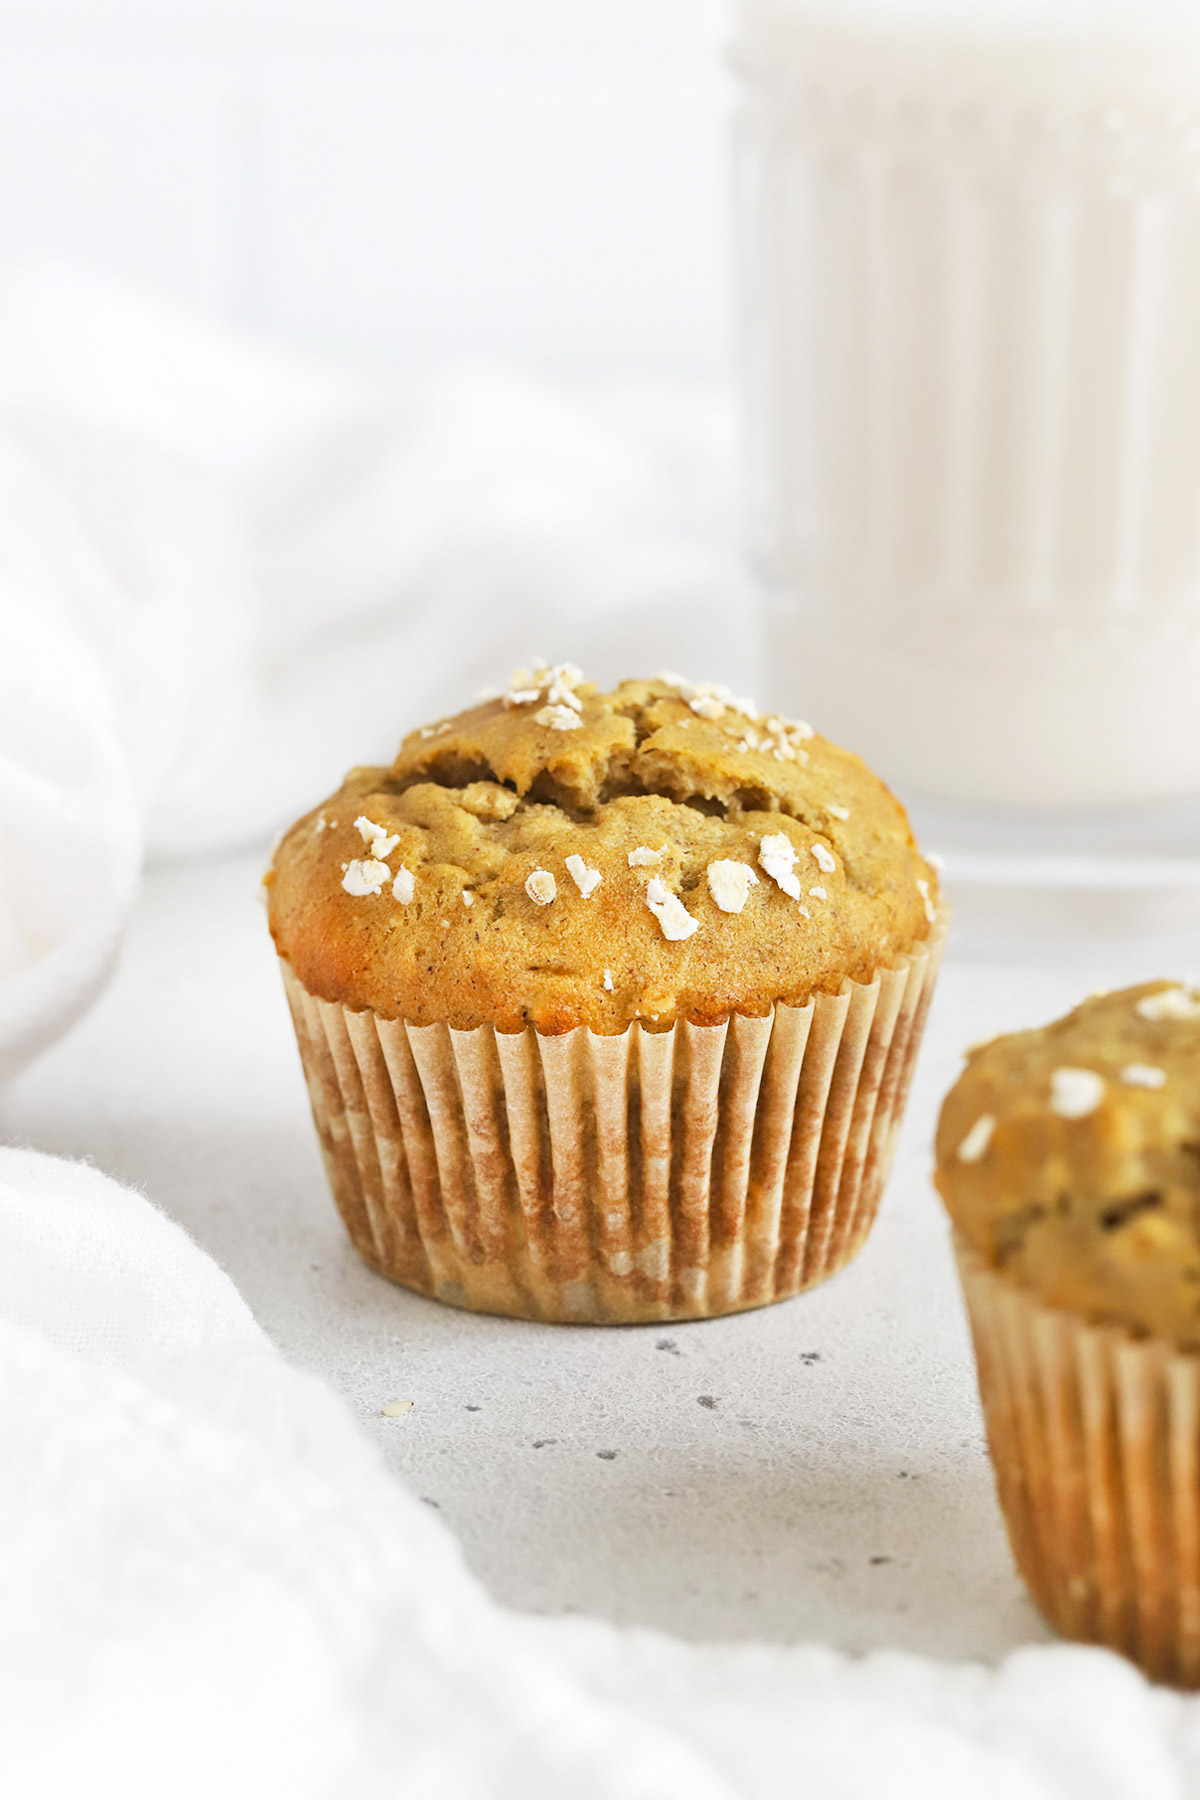 Front view of a gluten-free banana oatmeal muffin on a white background. A glass of almond milk is visible in the background.